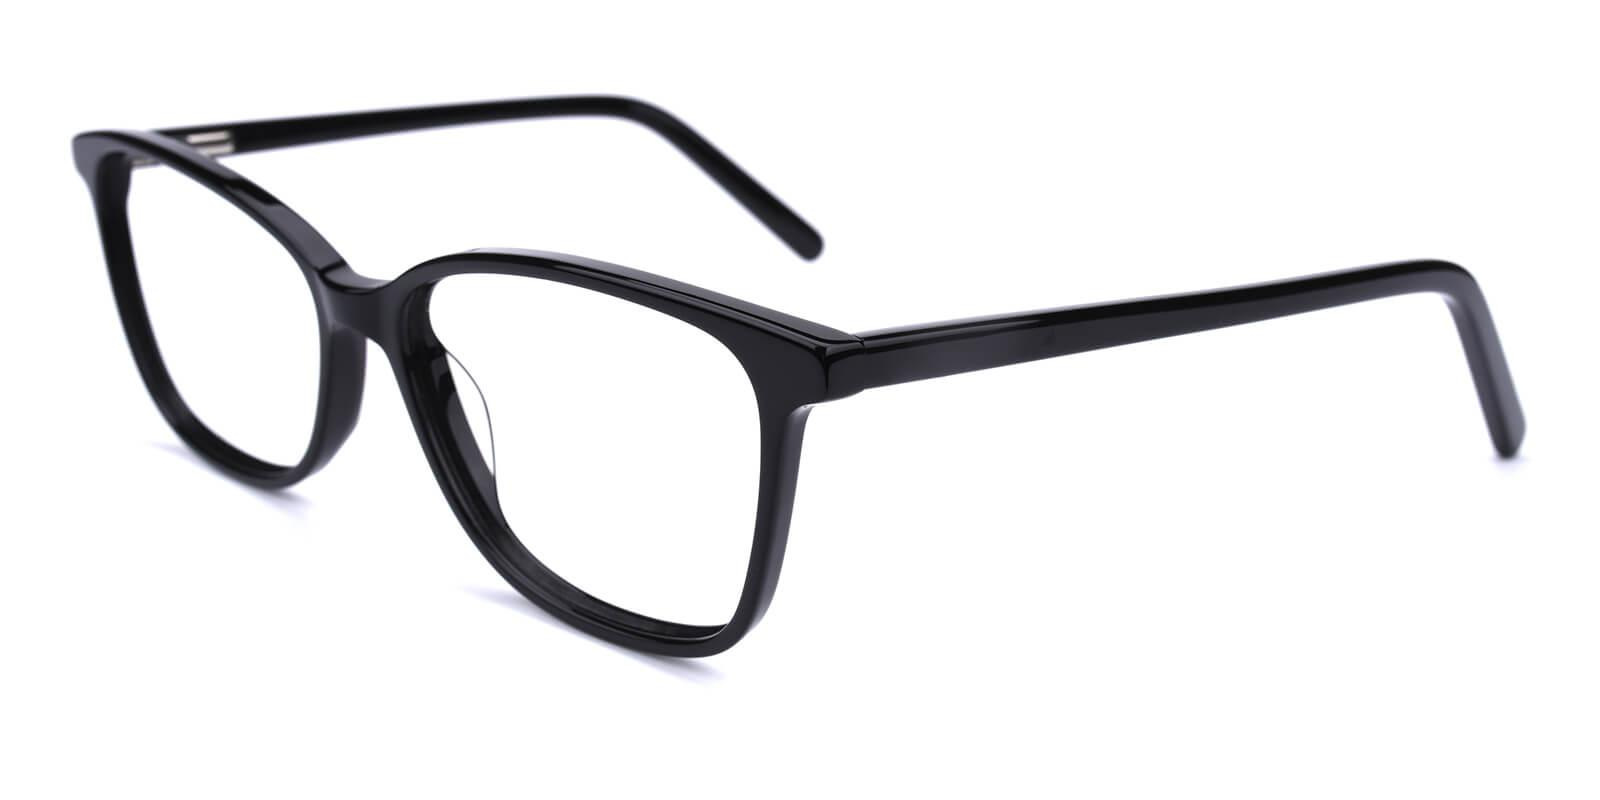 Believe-Black-Square / Cat-Acetate-Eyeglasses-additional1